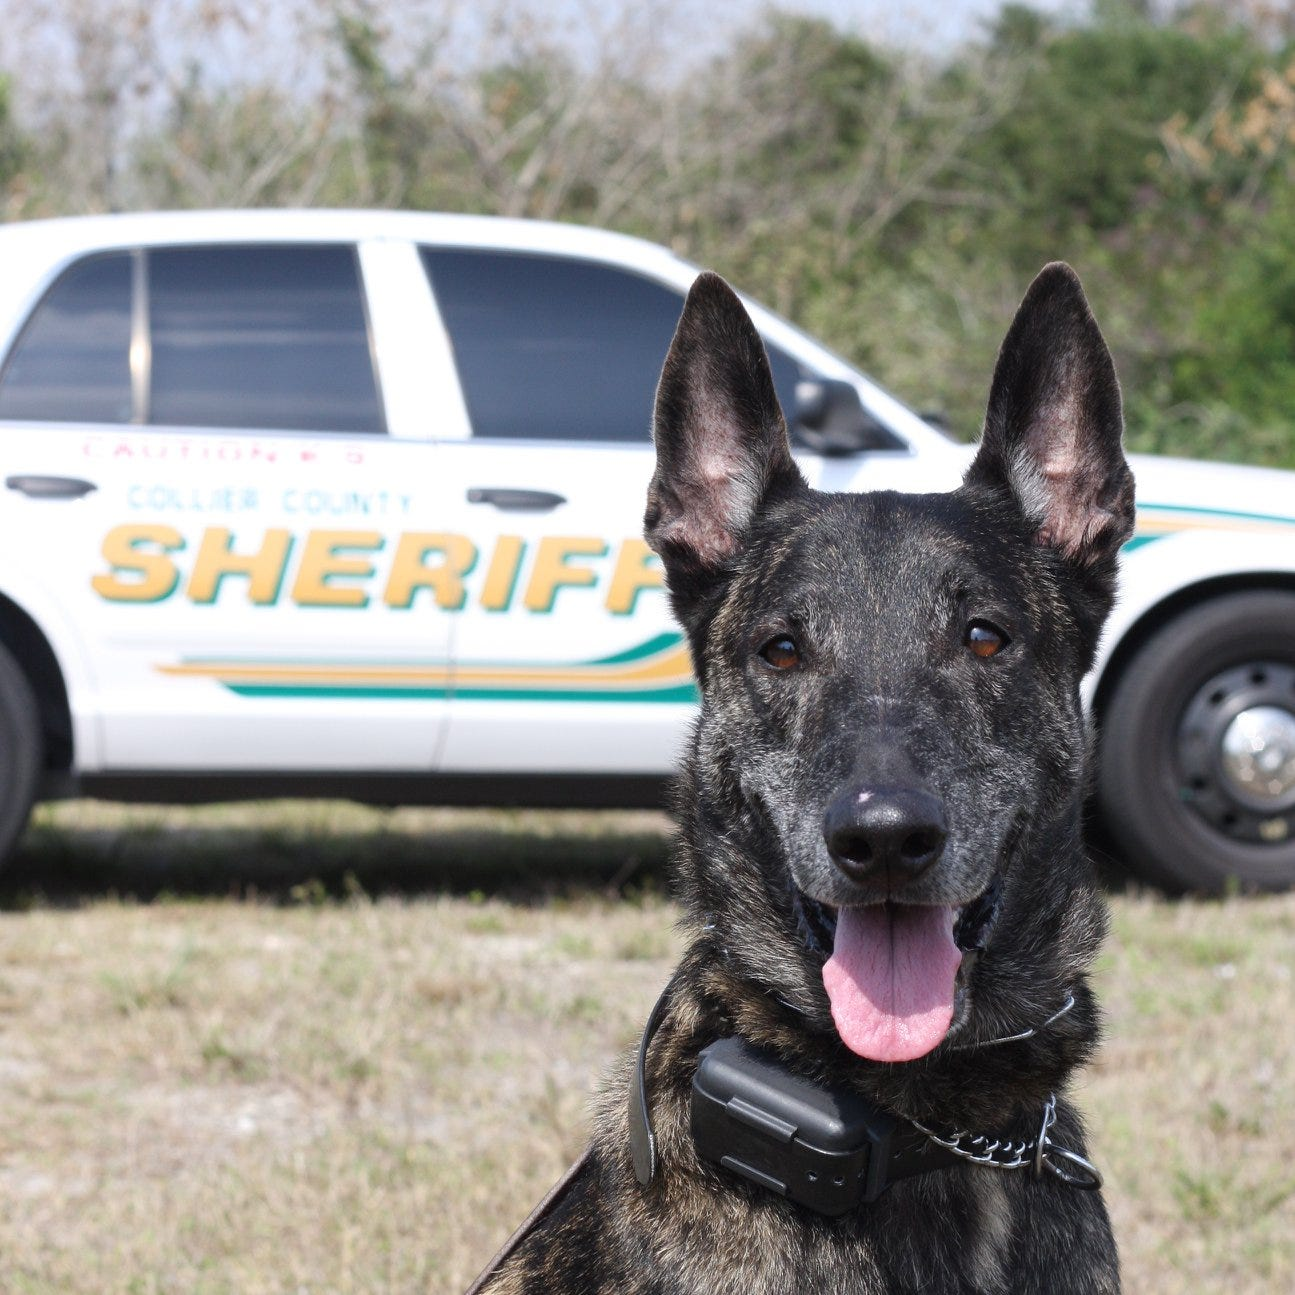 Collier County Sheriff's Office's longest-living K-9, Bandit, dies at 14 after retirement